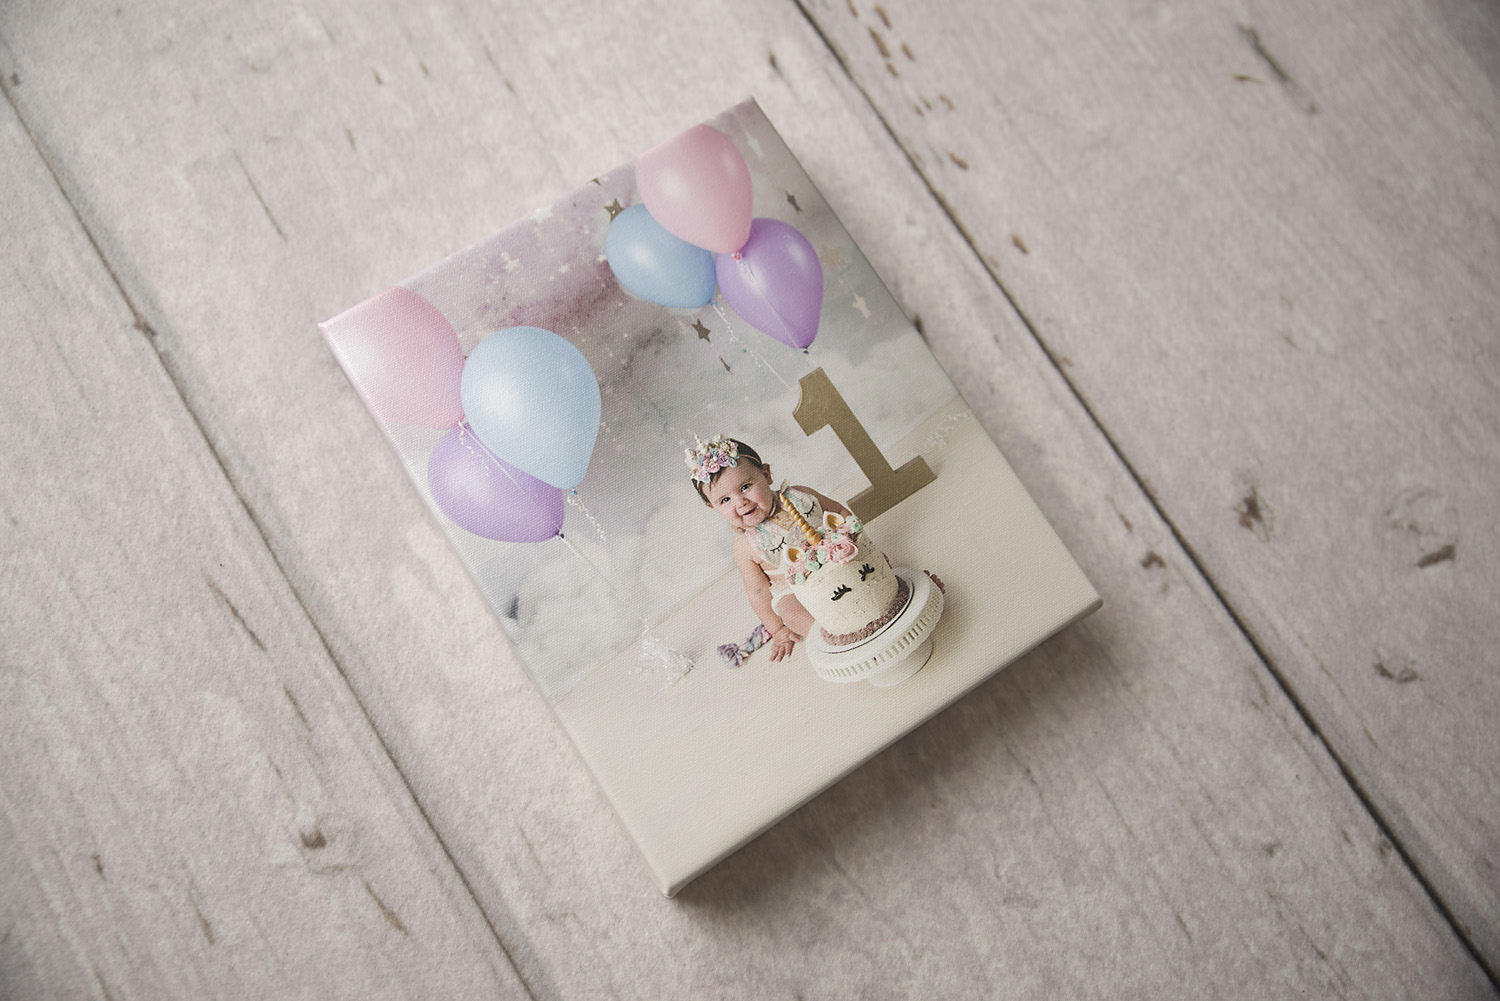 Order your Heirloom Canvas print From St. Louis Newborn Photographer